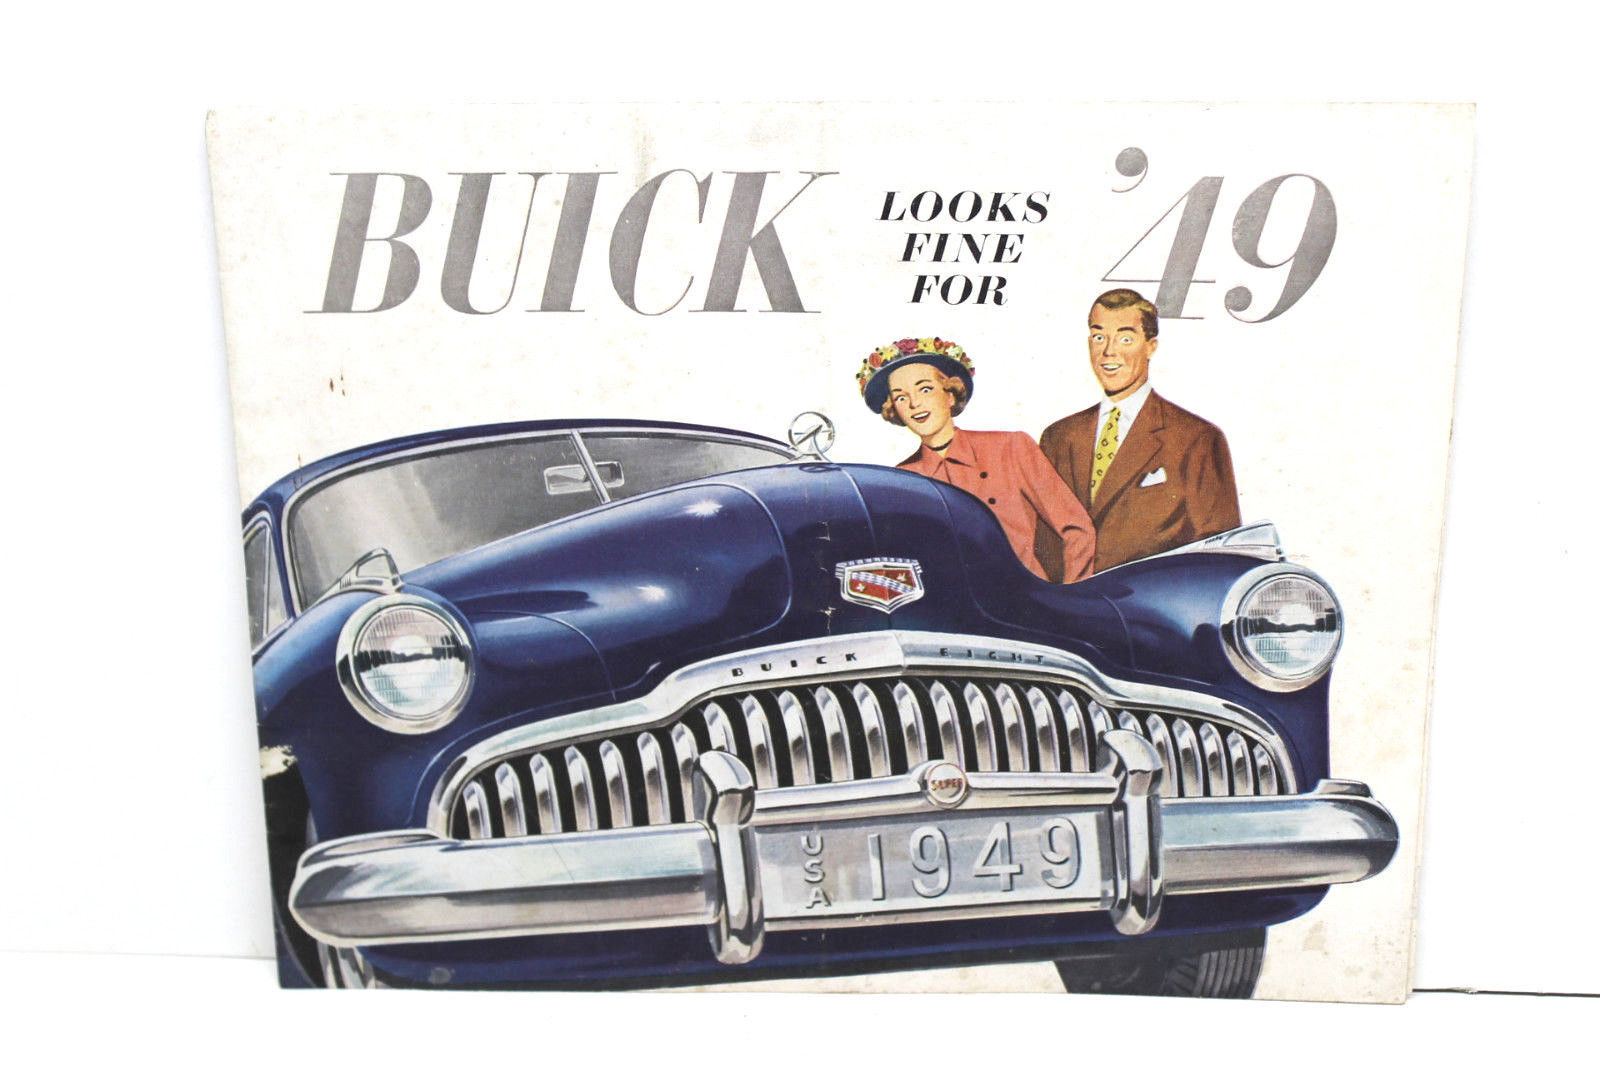 manual dealers brochures facts similar items special selling pc and salesman buick like points